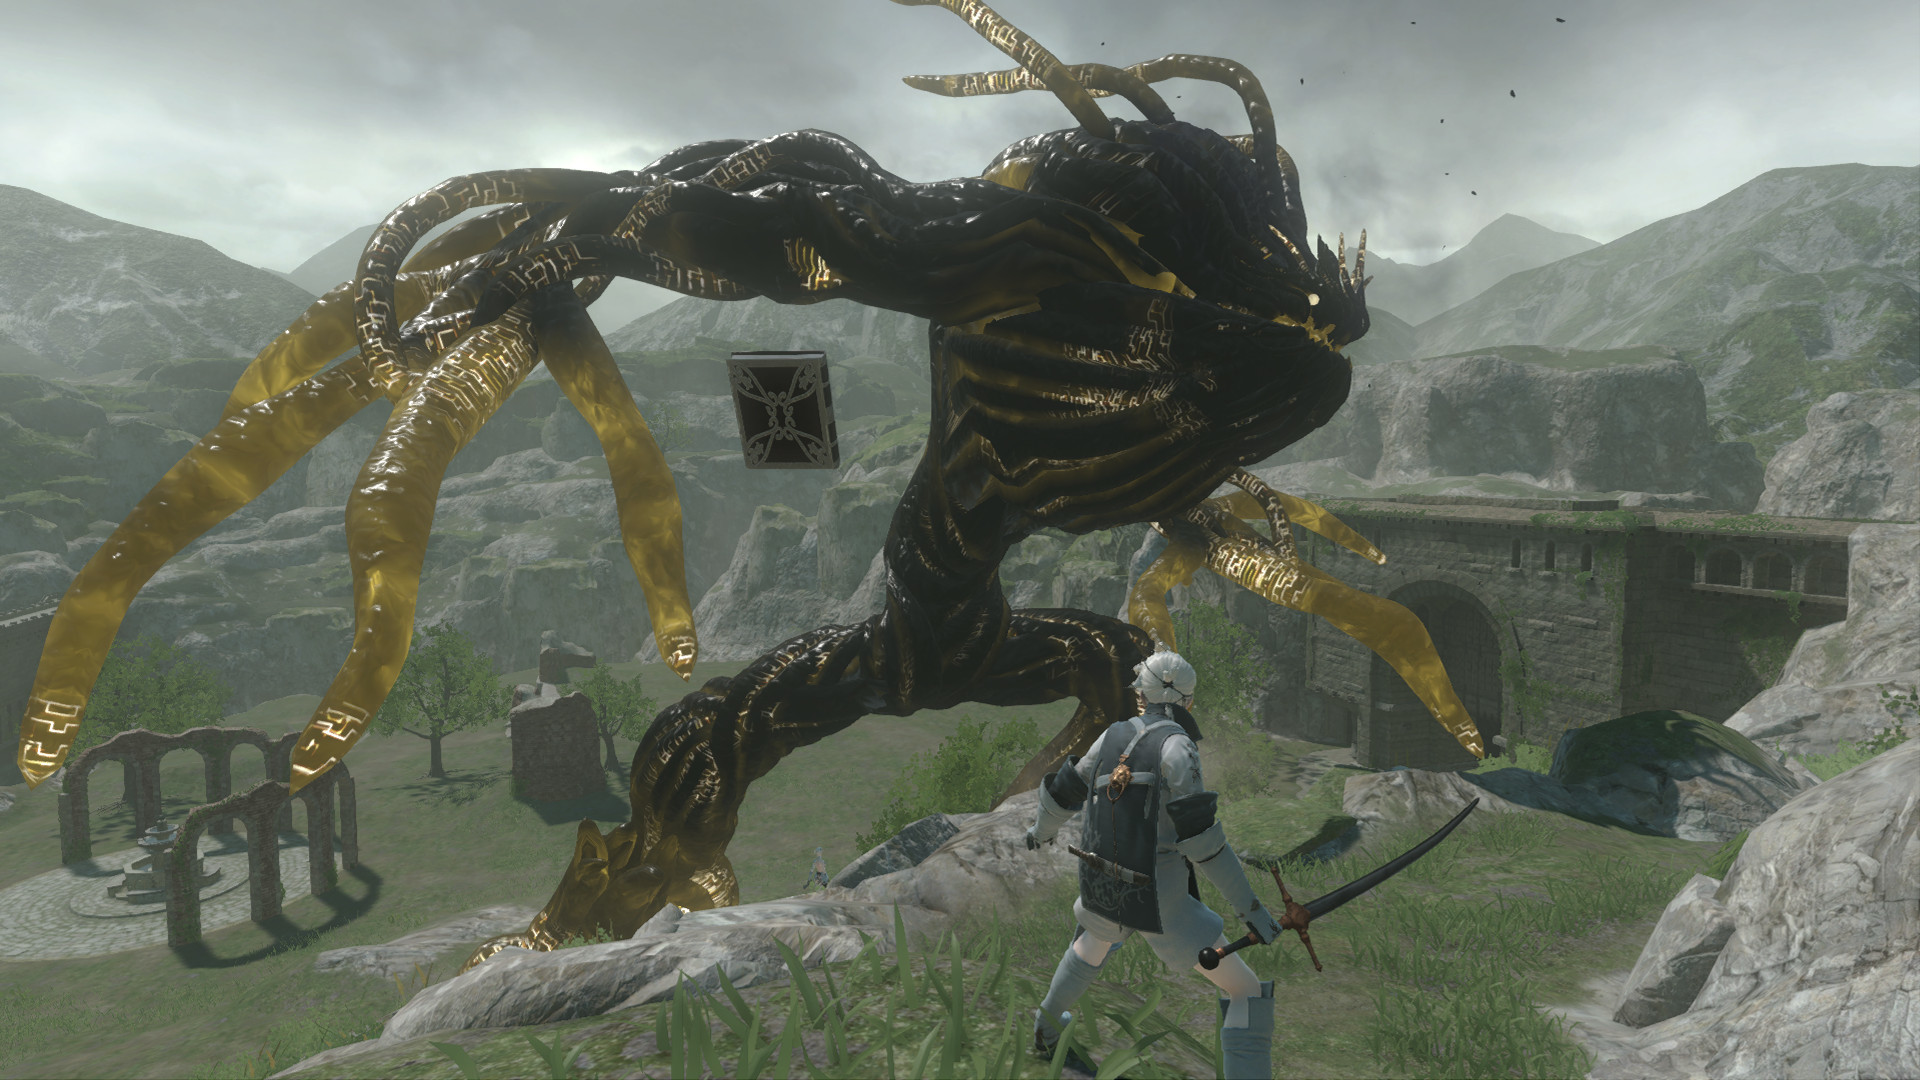 Image from NieR Replicant